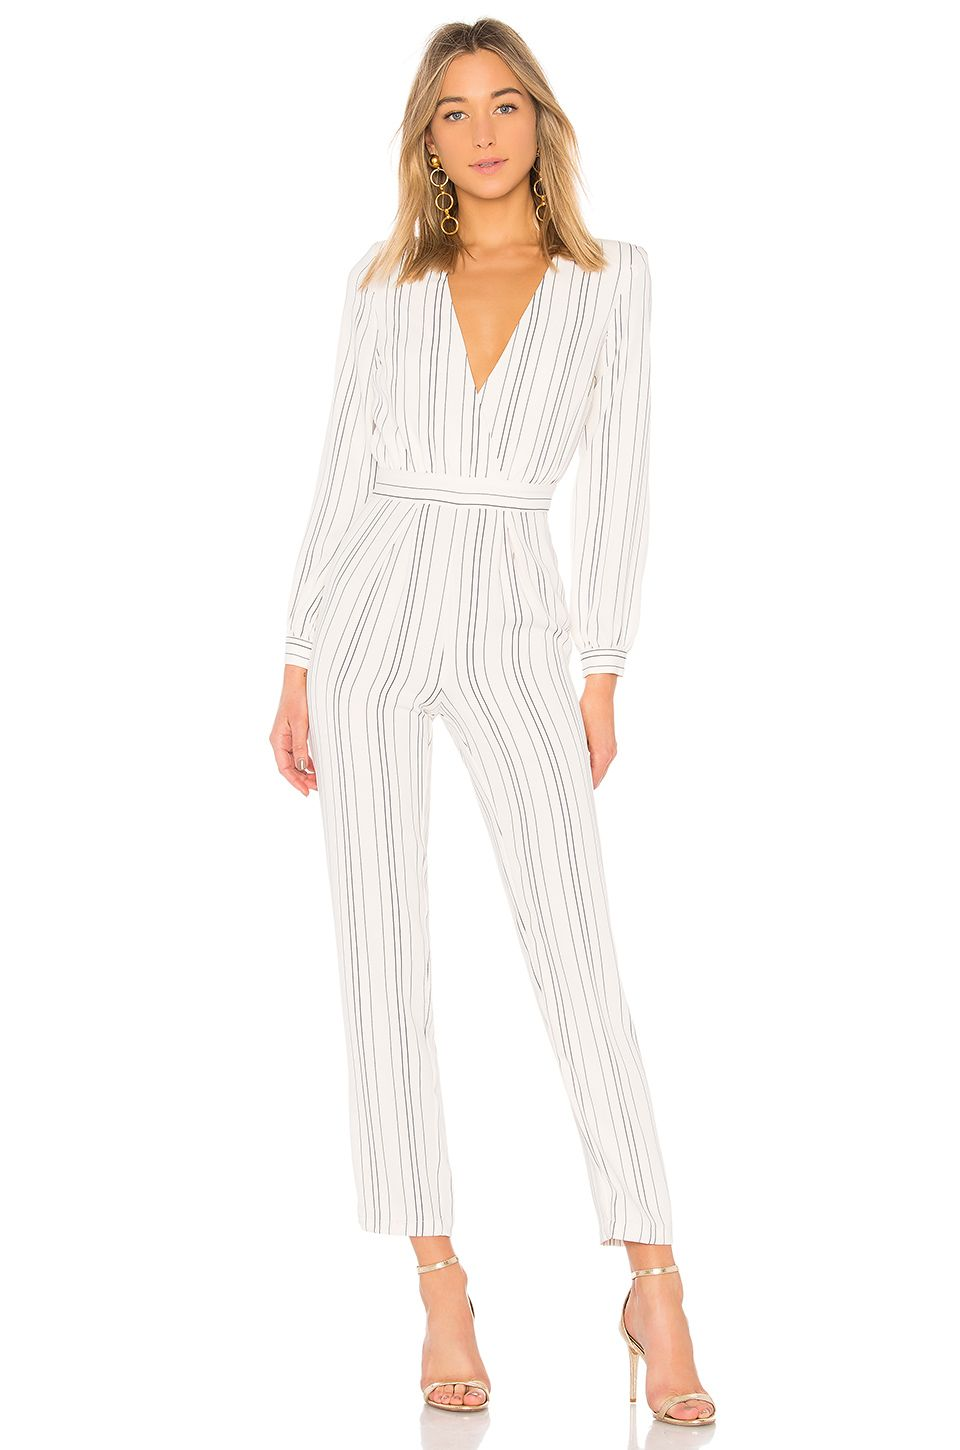 b68cf25594 Lovers + Friends Study Abroad Jumpsuit in White Pinstripe